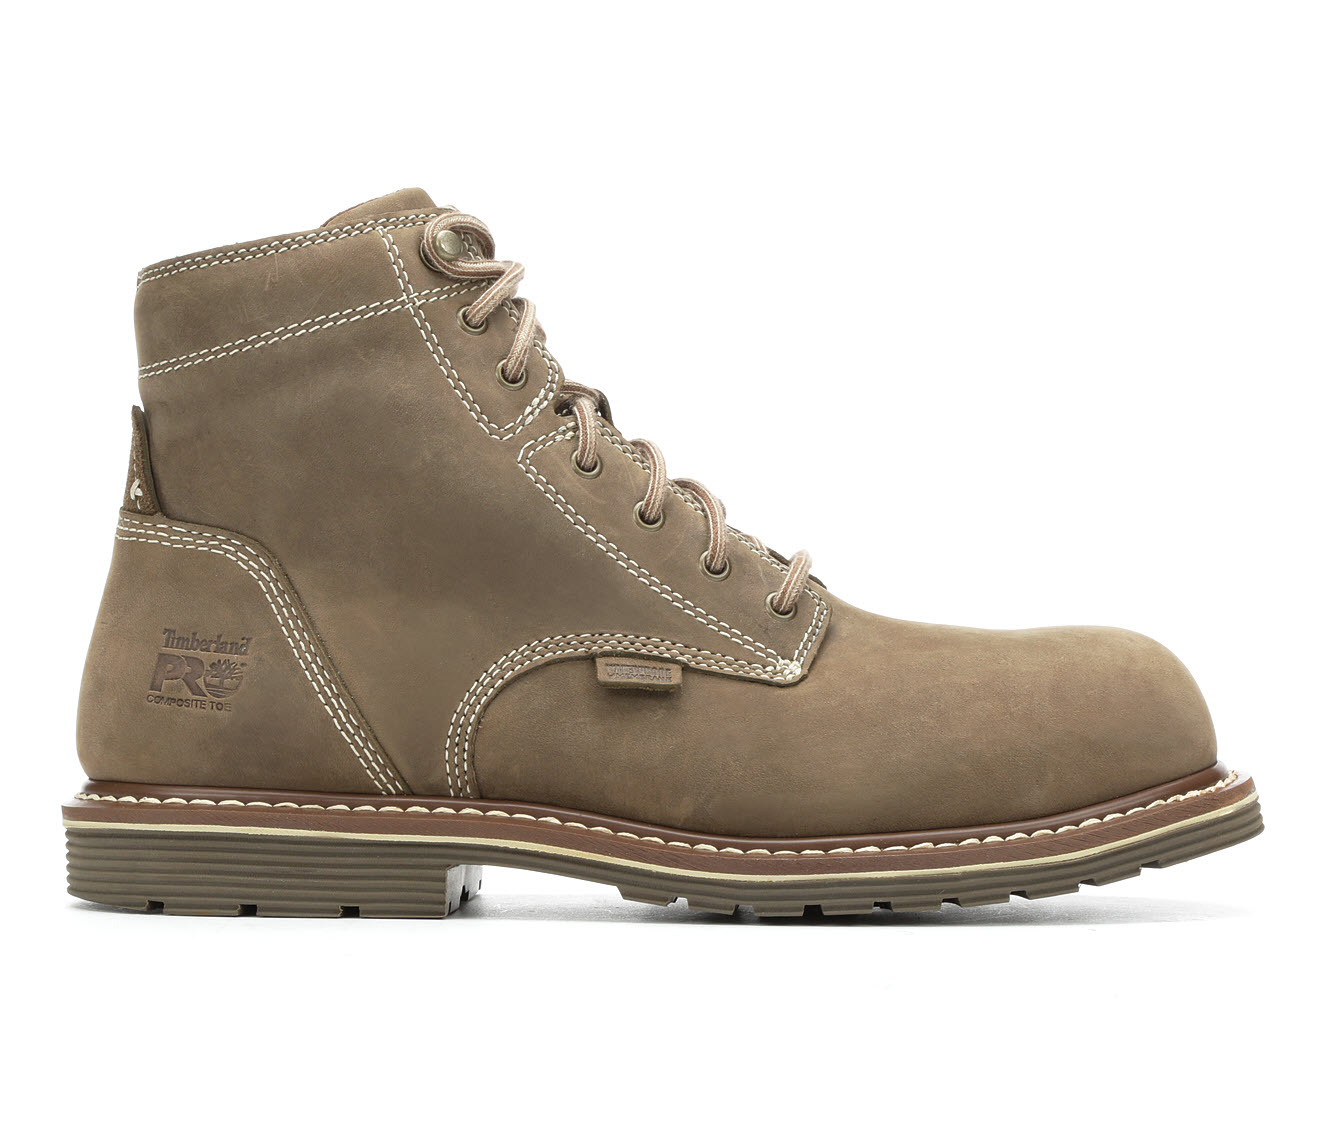 Timberland Pro Millworks A1VF8 Steel Toe Waterproof Men's Boots (Brown Leather)